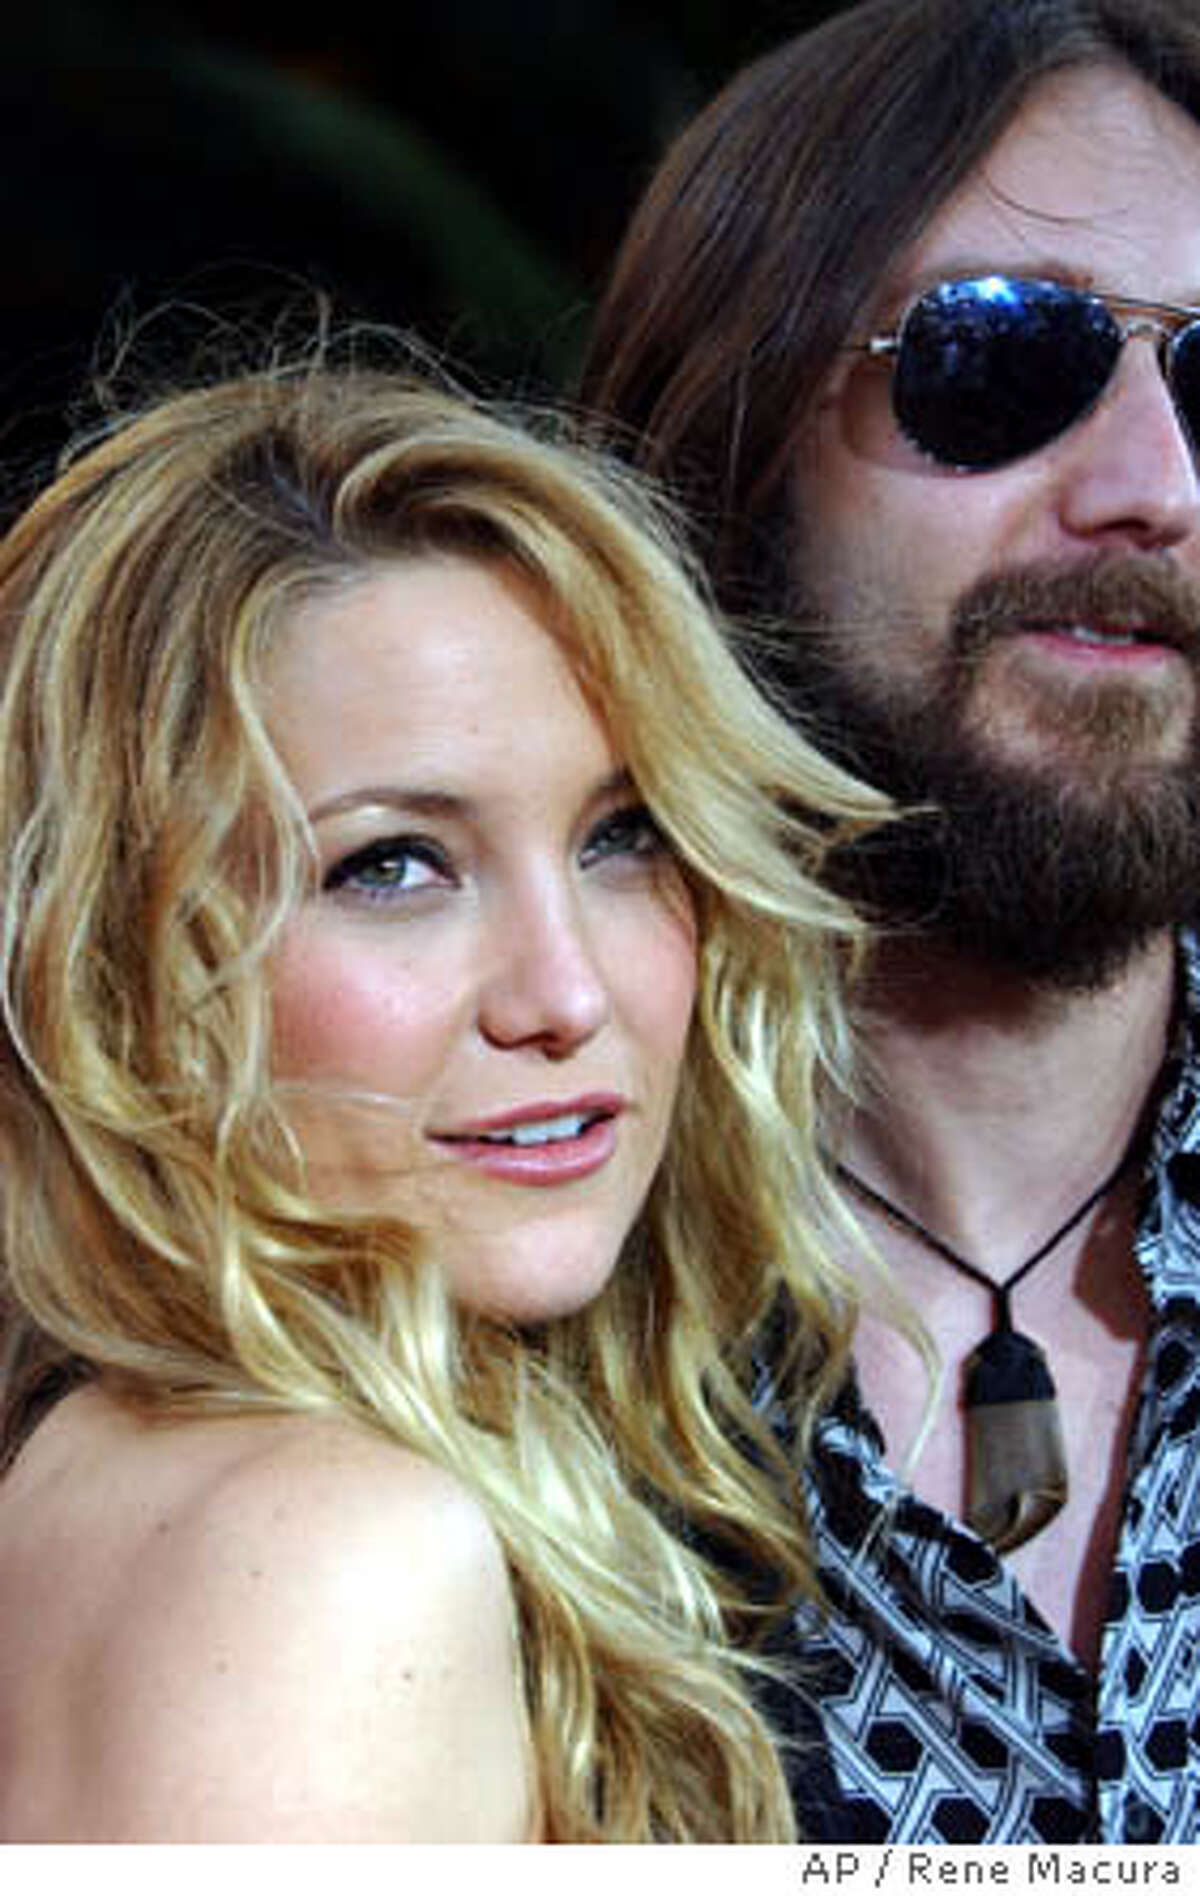 Kate Hudson, left, and her husband Chris Robinson, right, pose for photographers on the red carpet before the premiere of